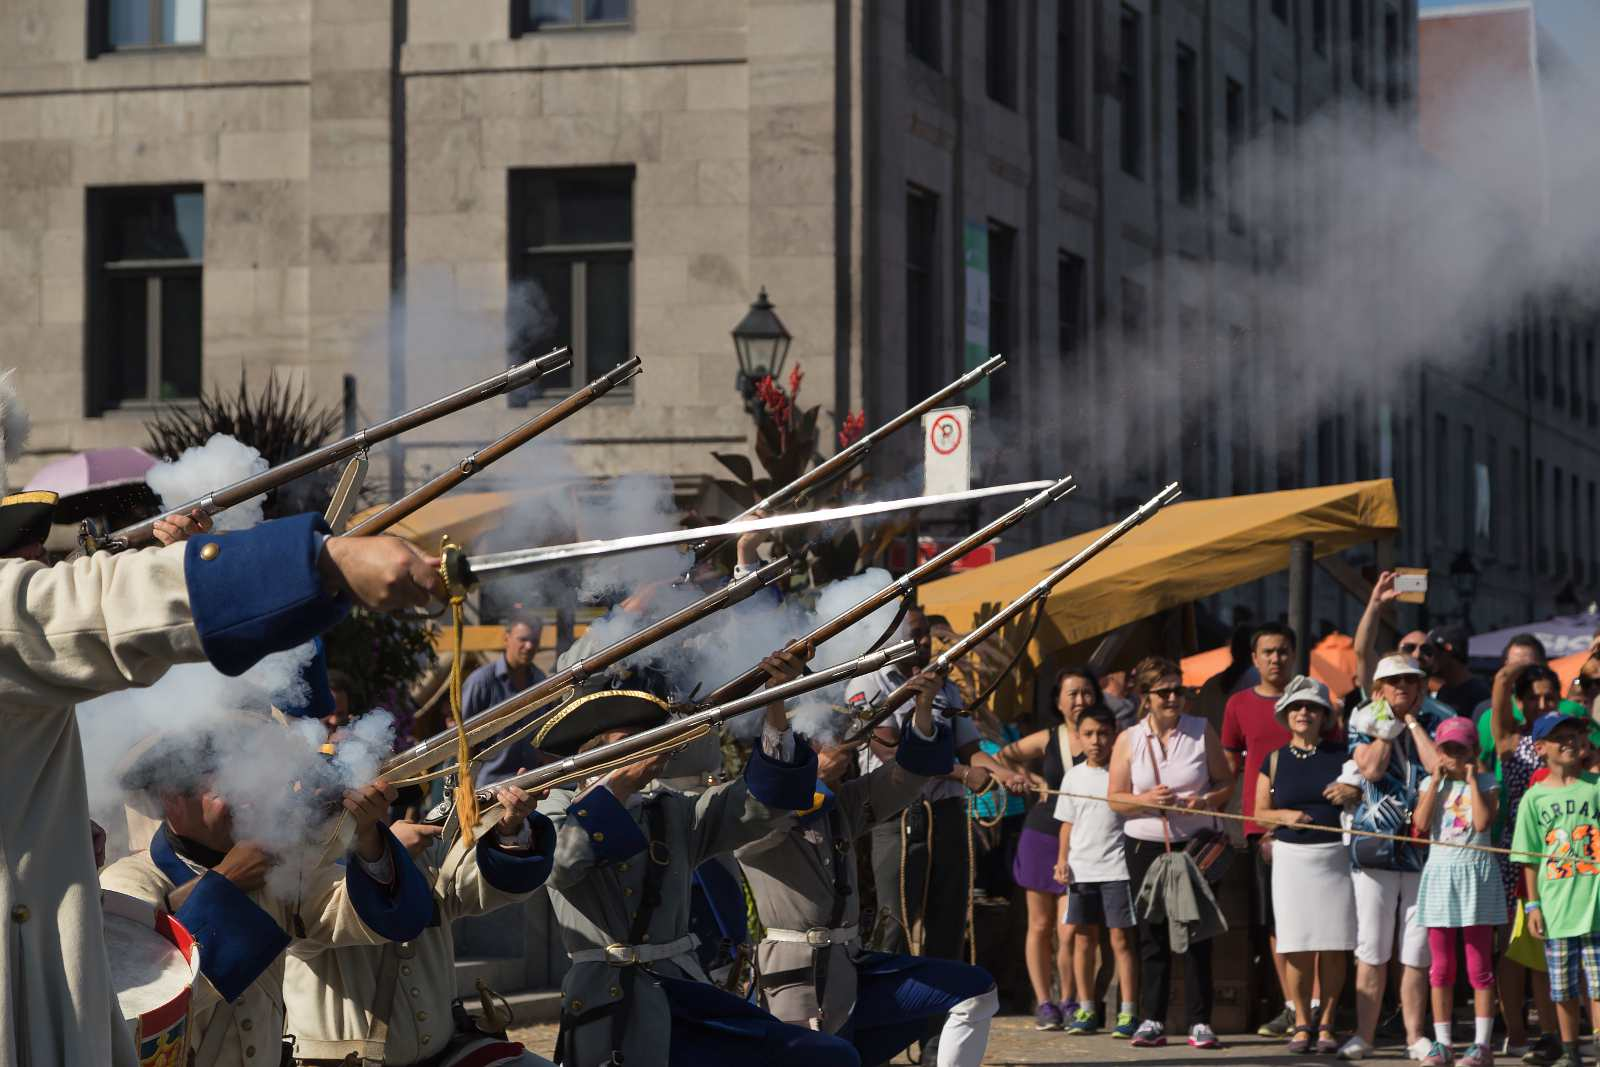 Montreal festivals in August 2016 include the 18th Century Market.